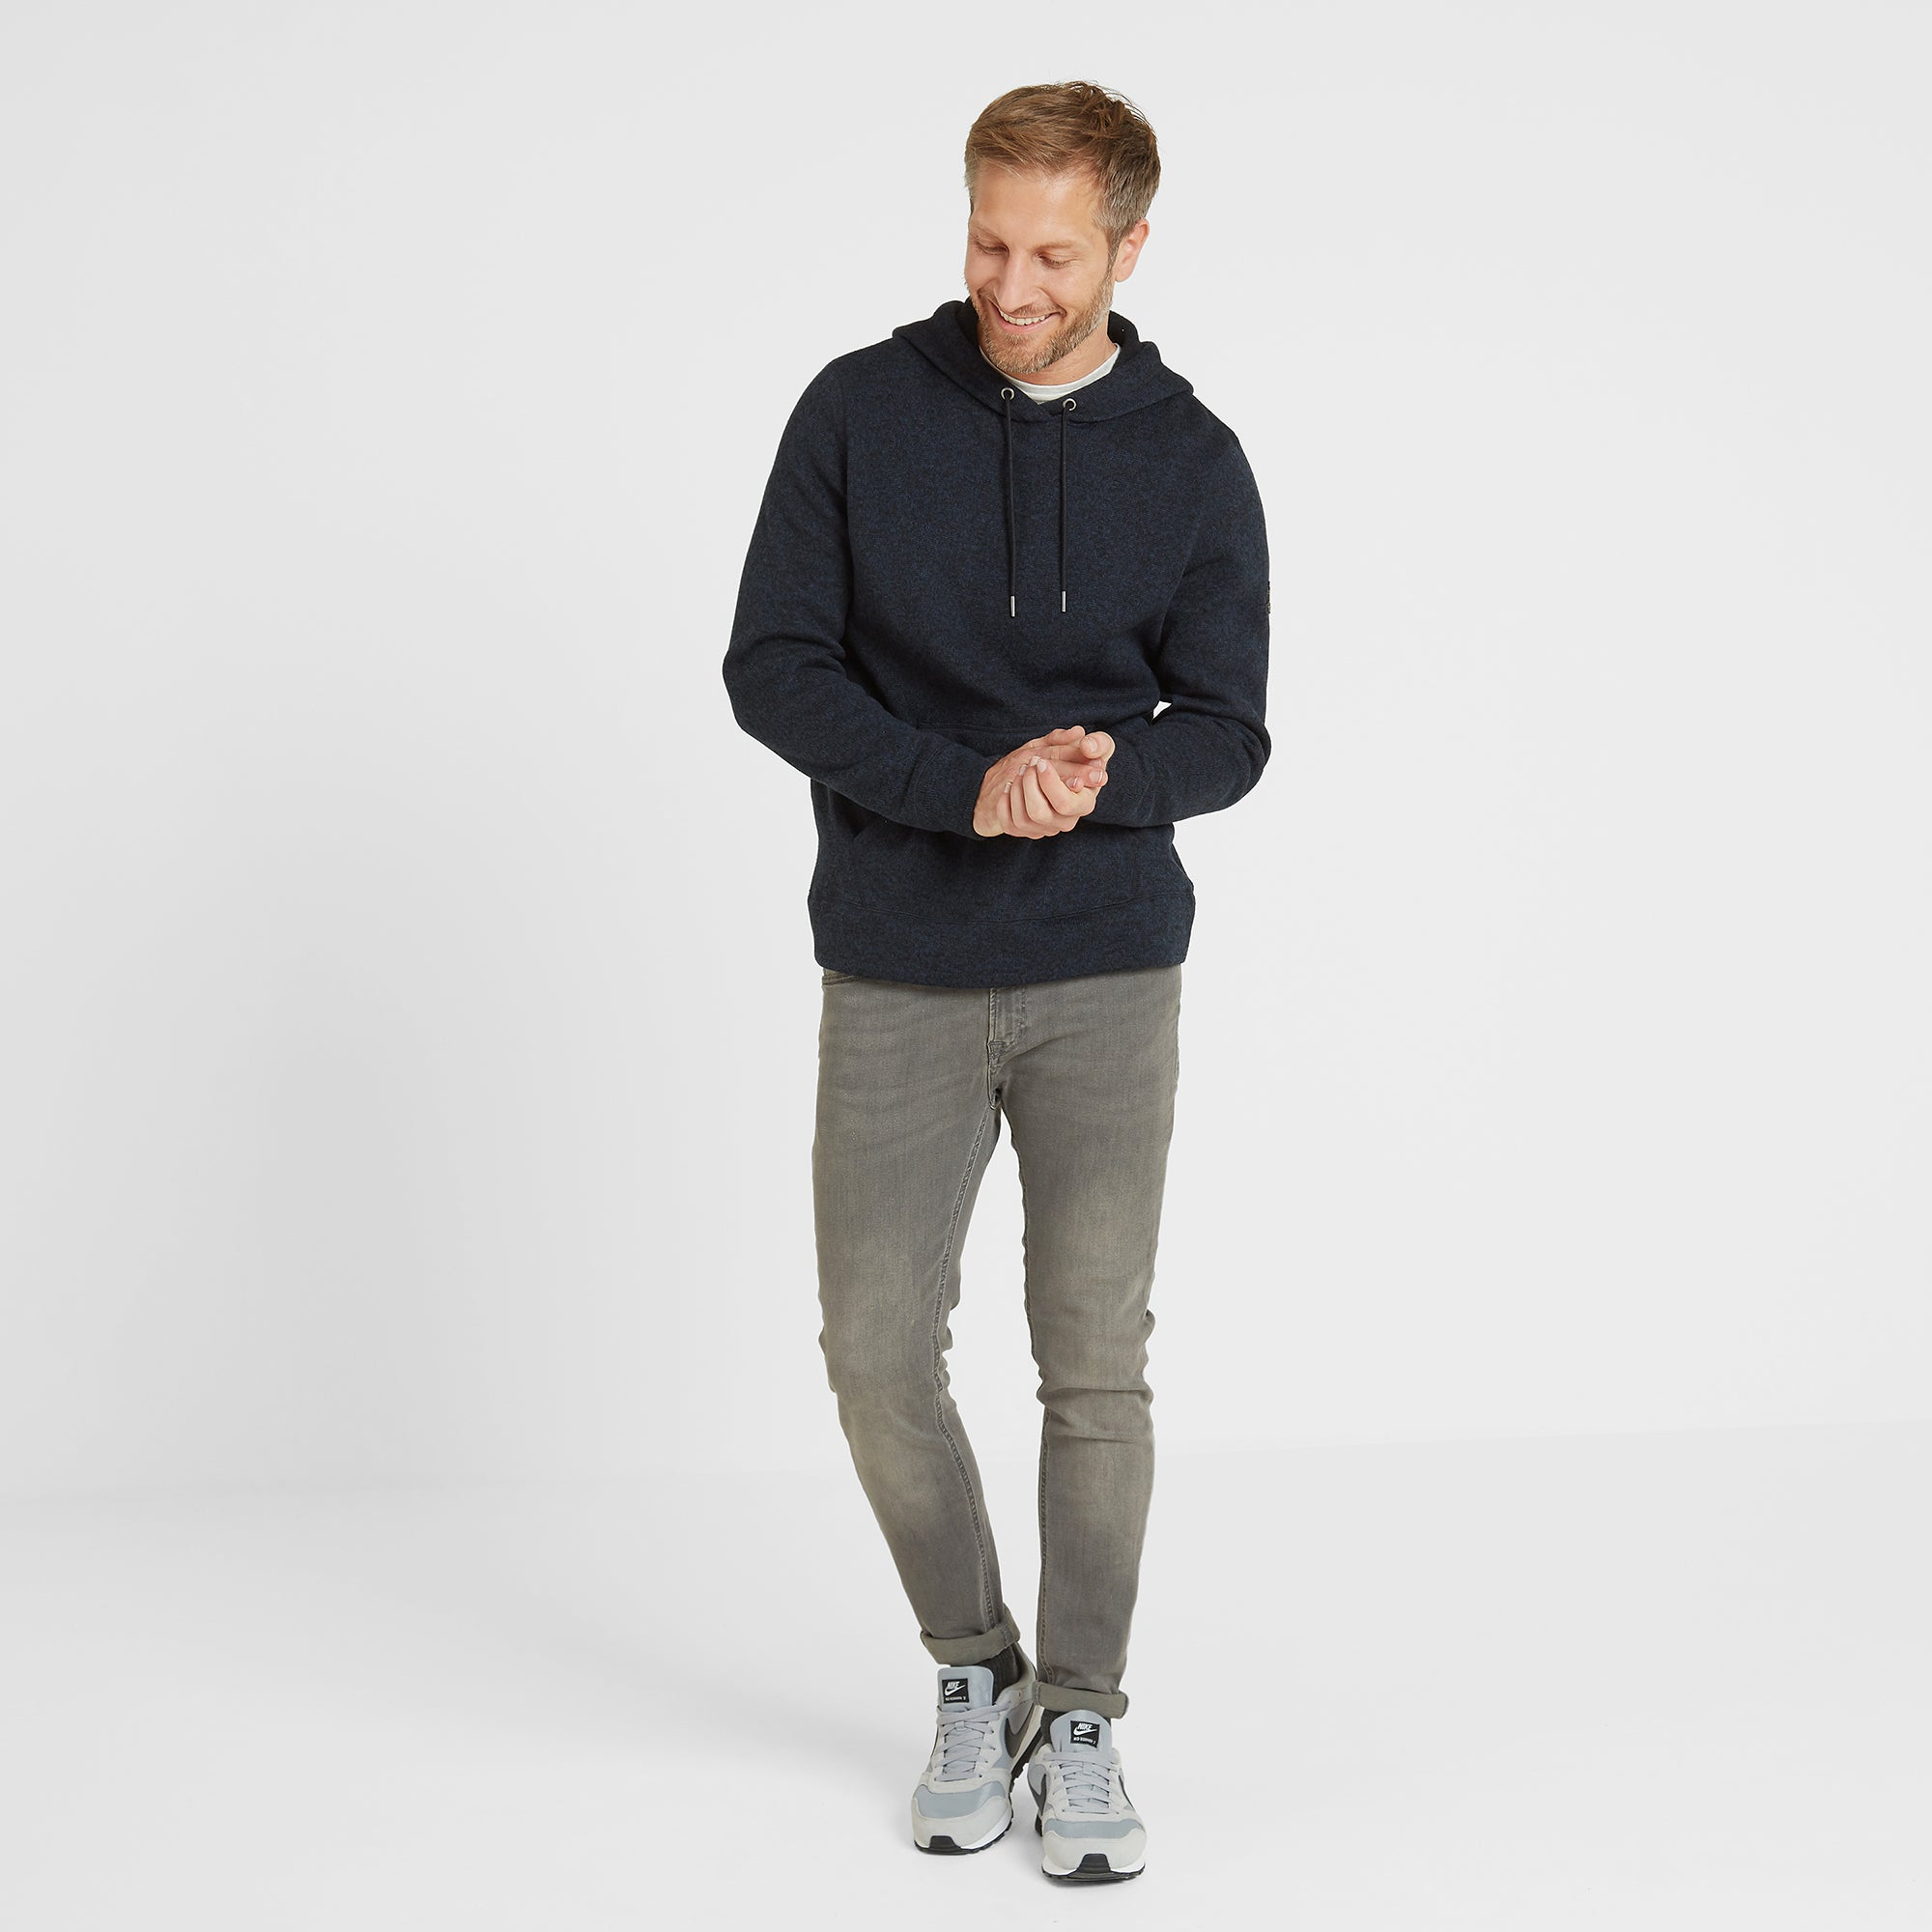 Chilton Mens Knitlook Fleece Hoody - Dark Indigo Marl